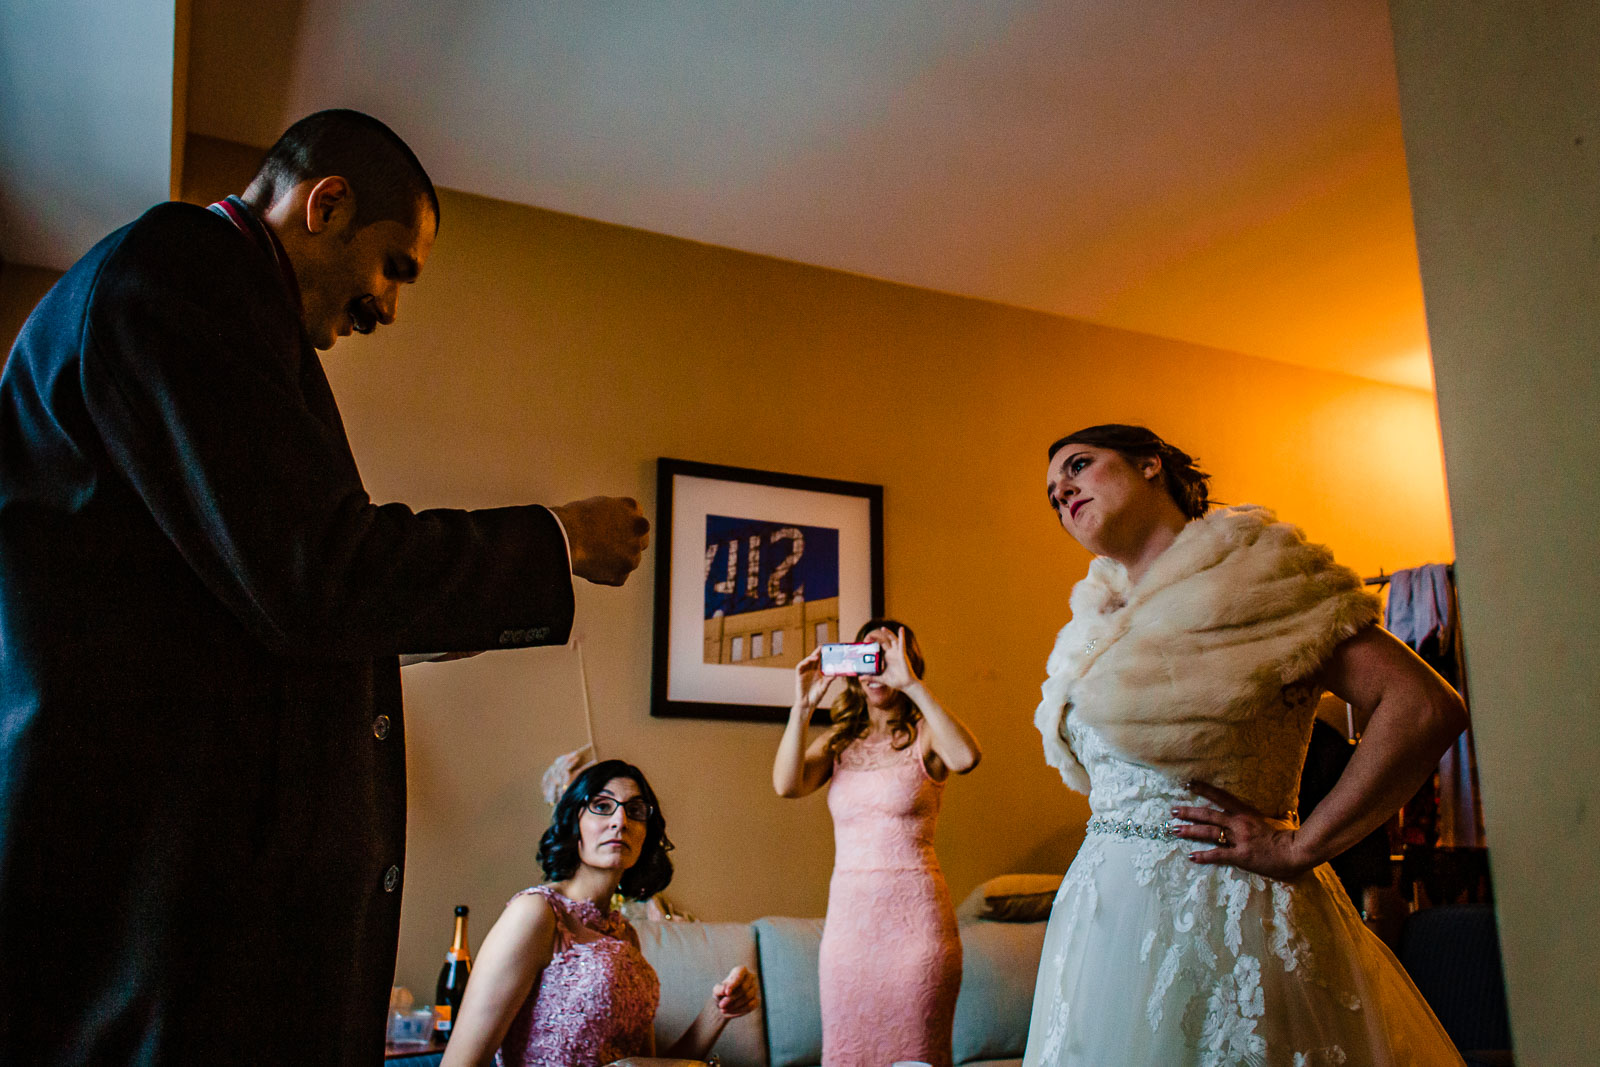 Bride and groom get ready in hotel